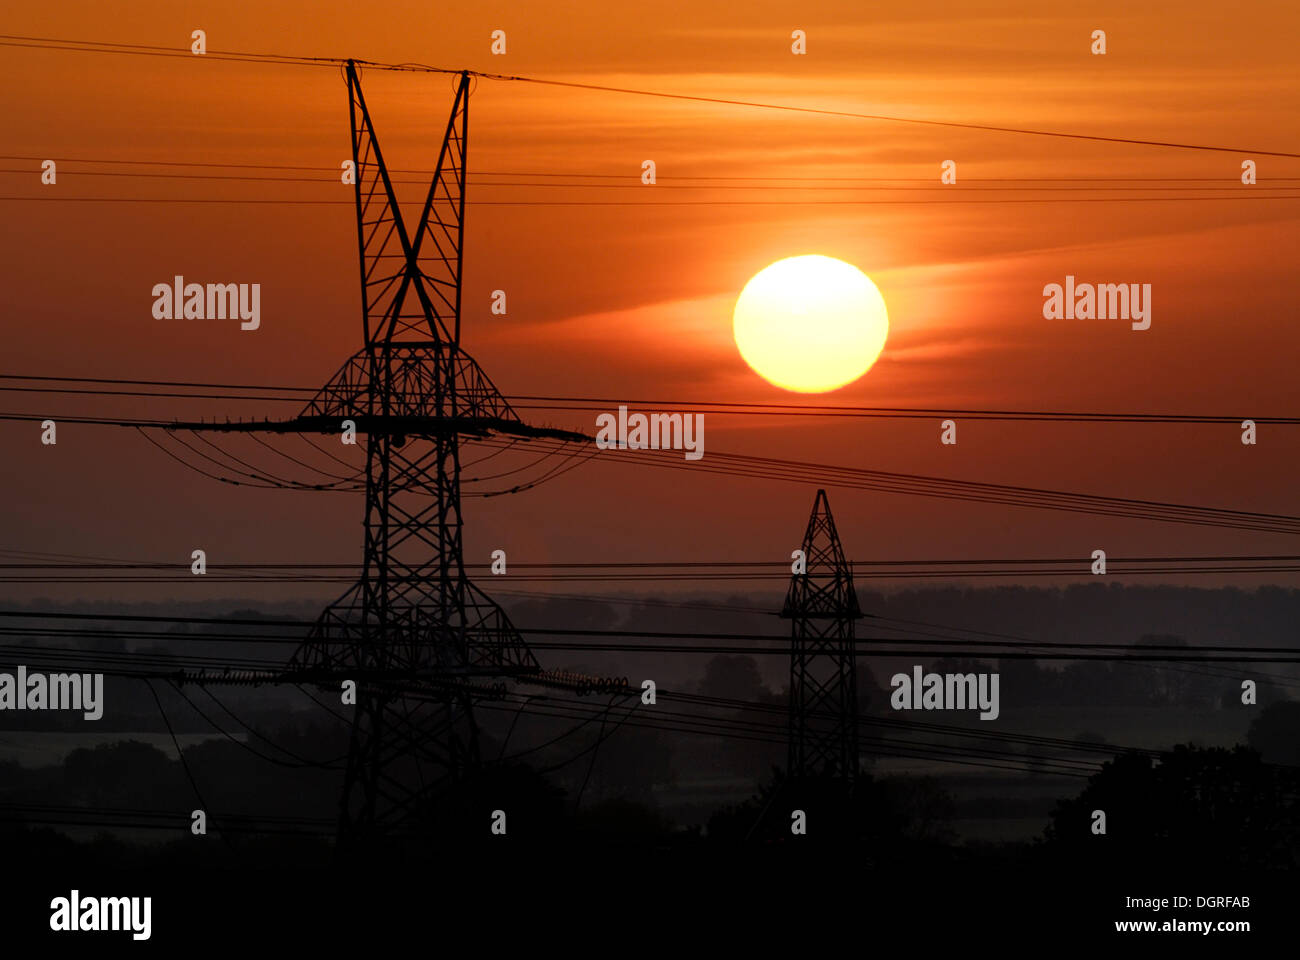 High-voltage transmission line in front of the rising sun, near Rendsburg, Schleswig-Holstein - Stock Image